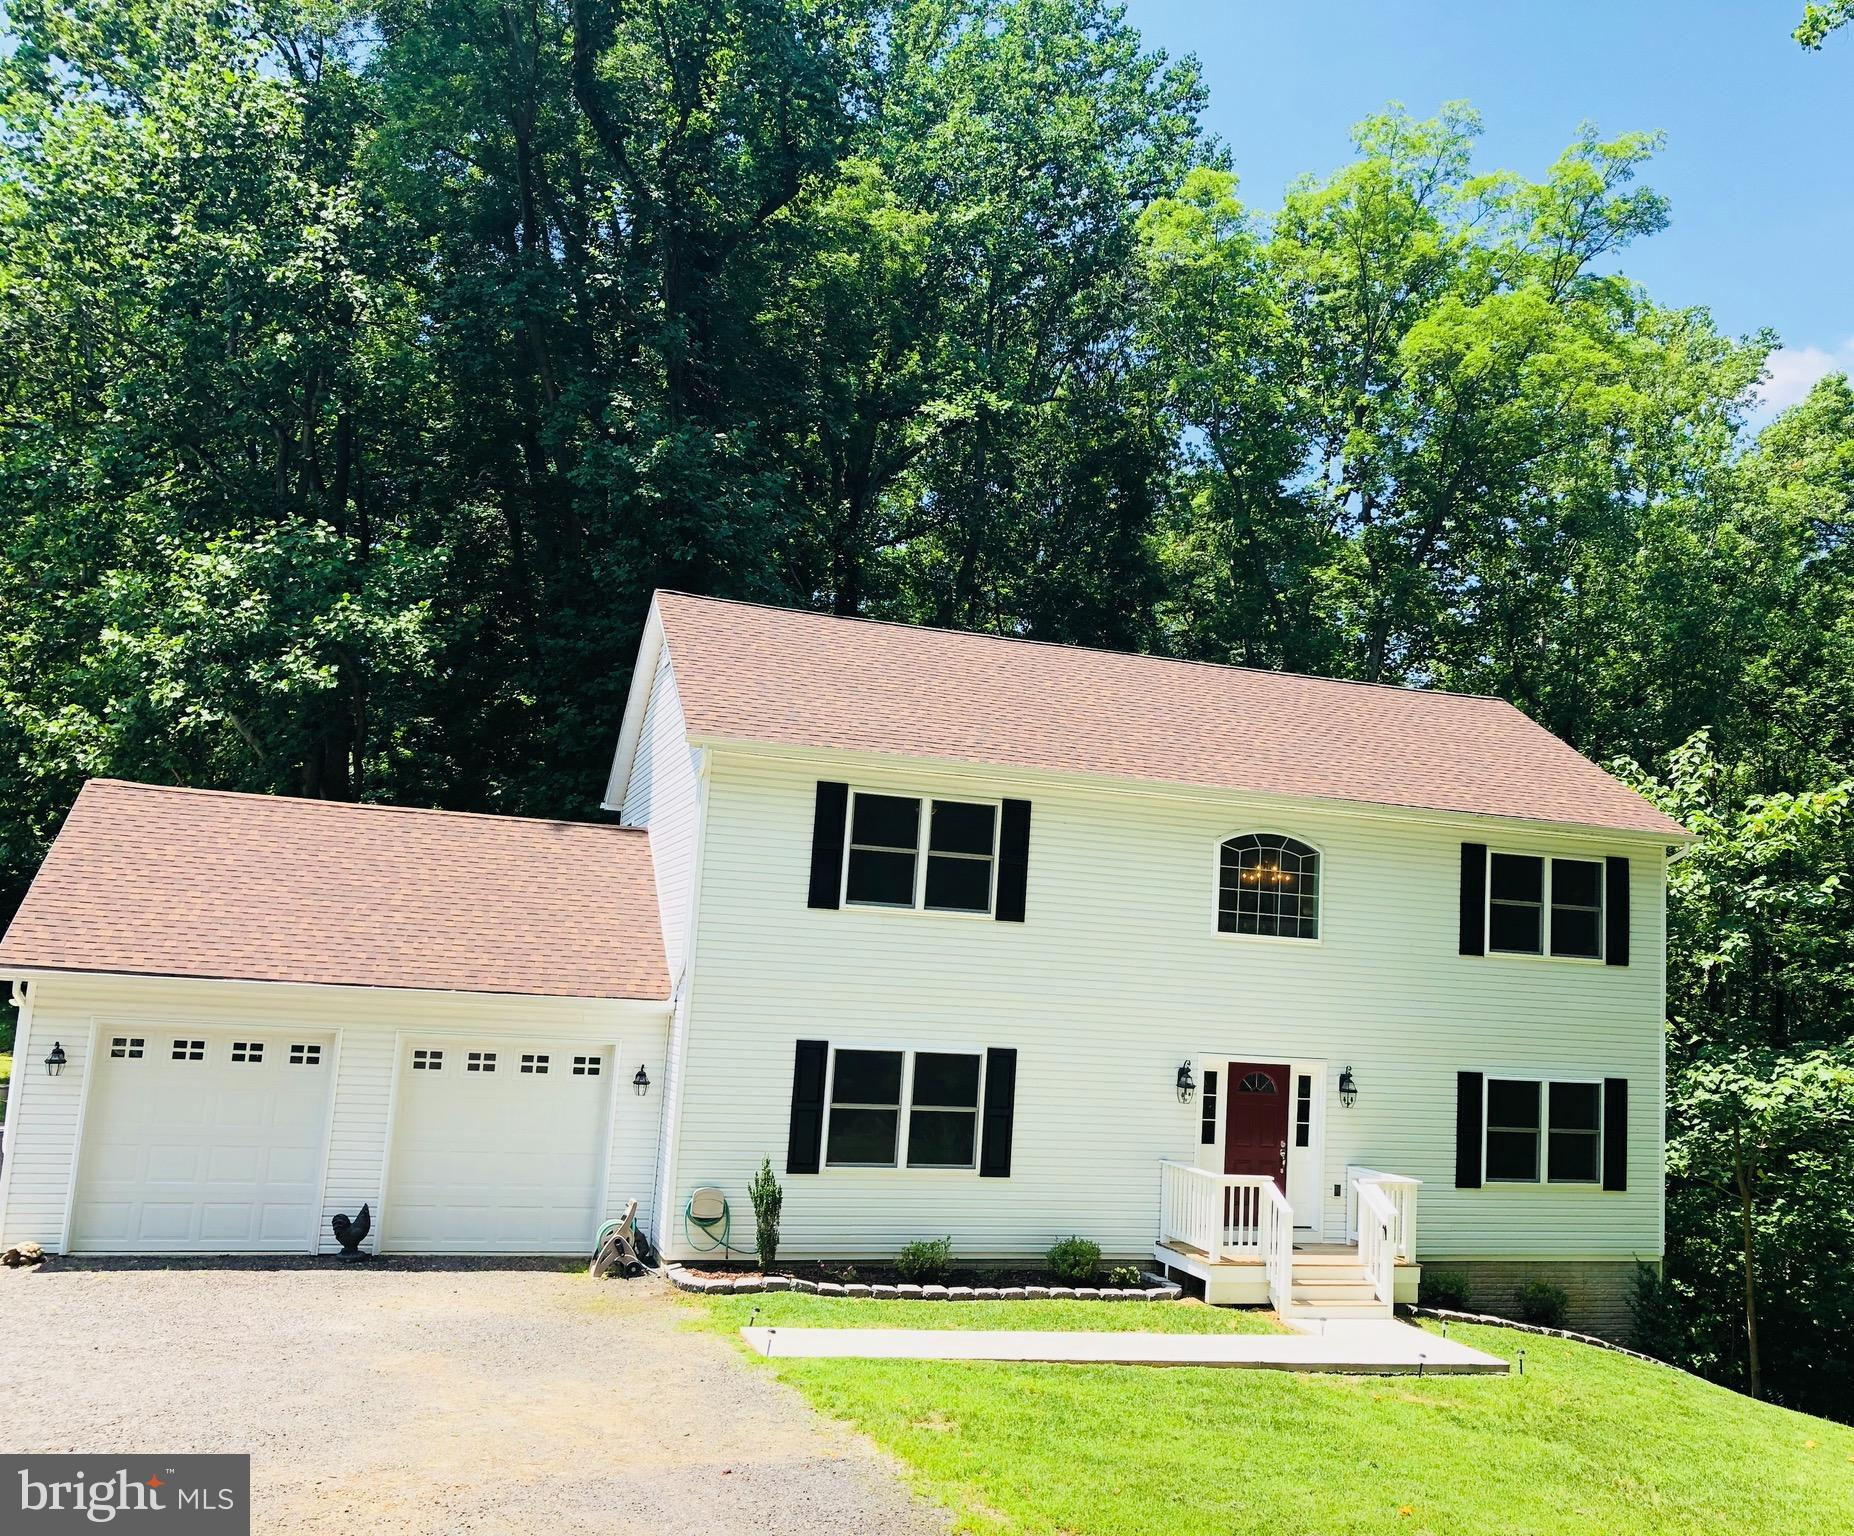 3955 BREEZY POINT ROAD, CHESAPEAKE BEACH, MD 20732